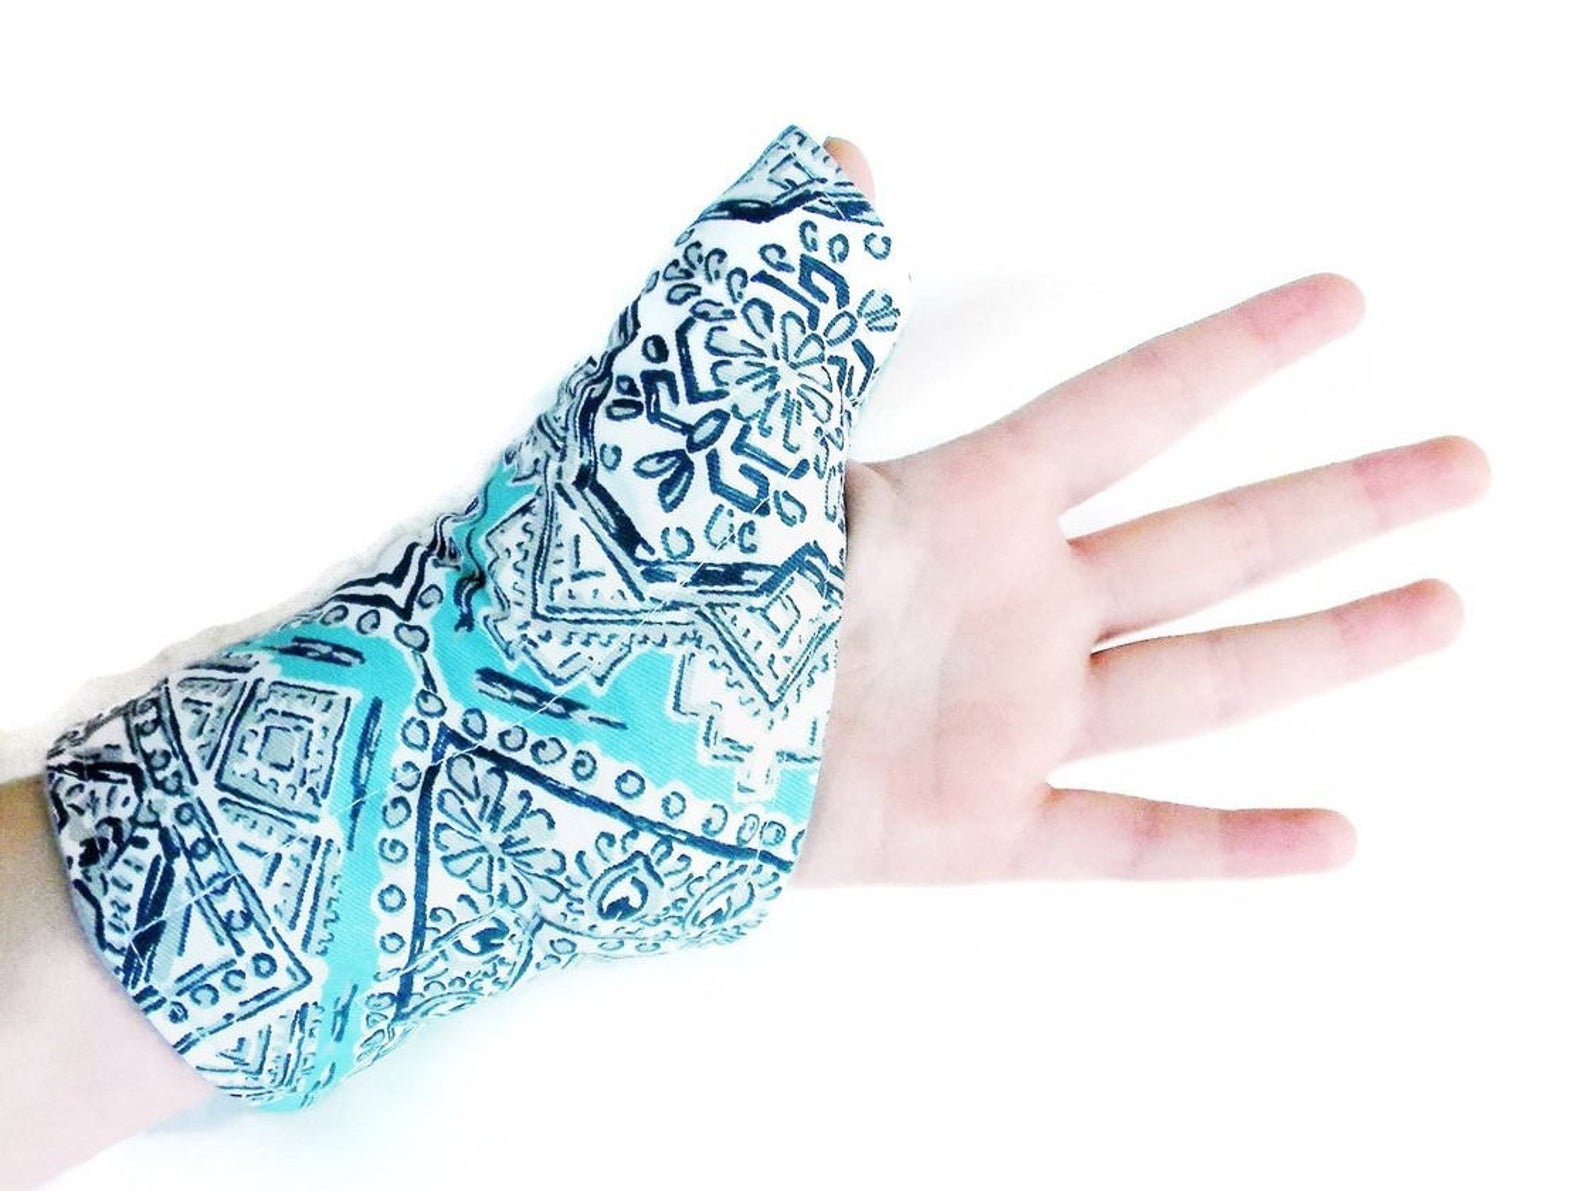 Model wearing blue pack that covers the bottom of their hand, wrist, and thumb